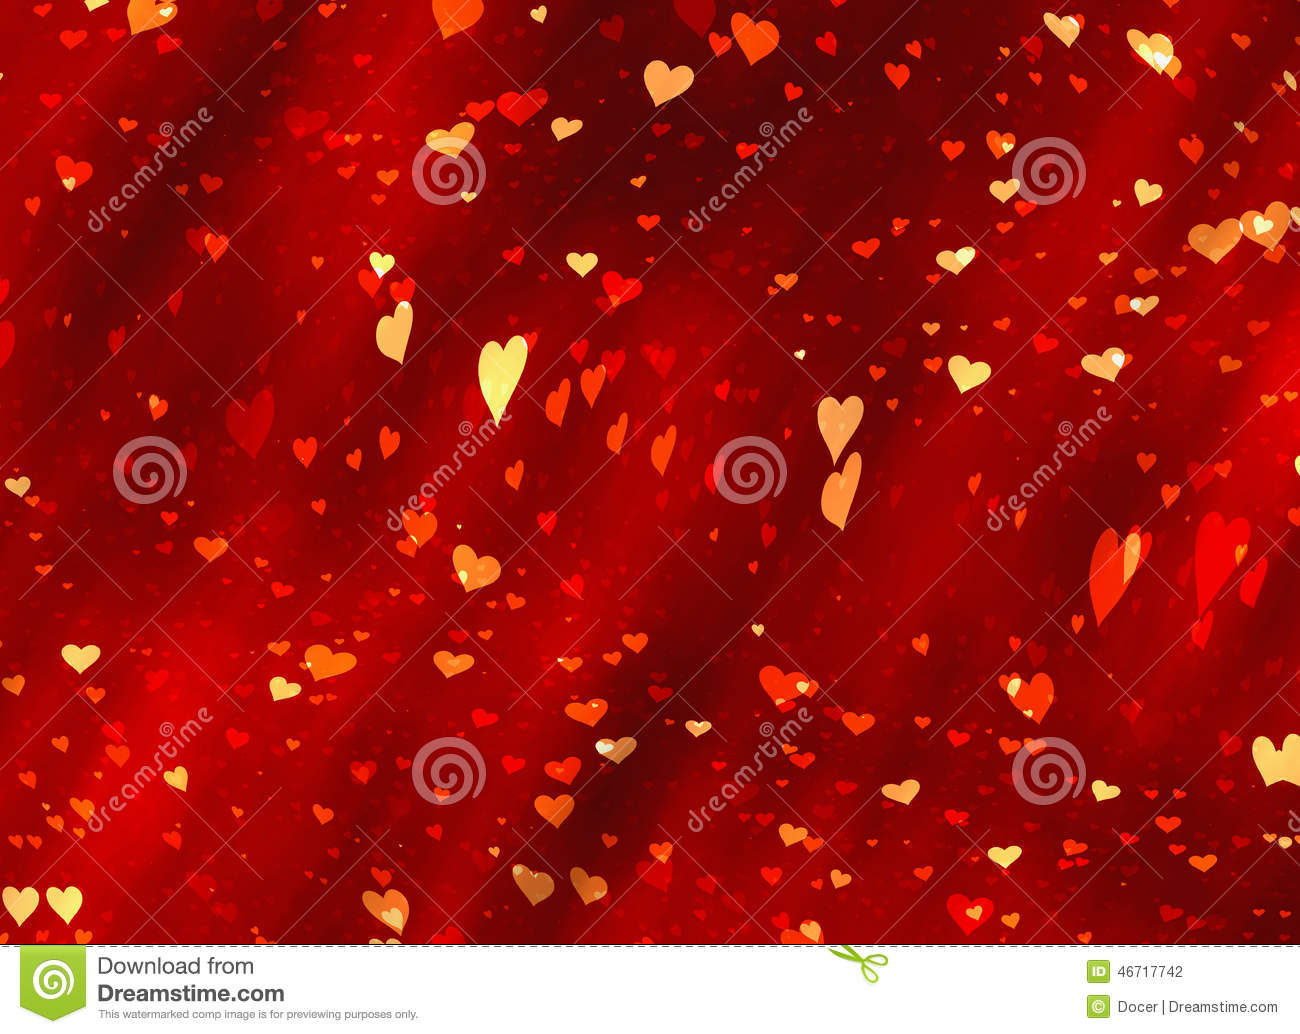 Flying Red Hearts Backgrounds Of Valentine's Day. Love